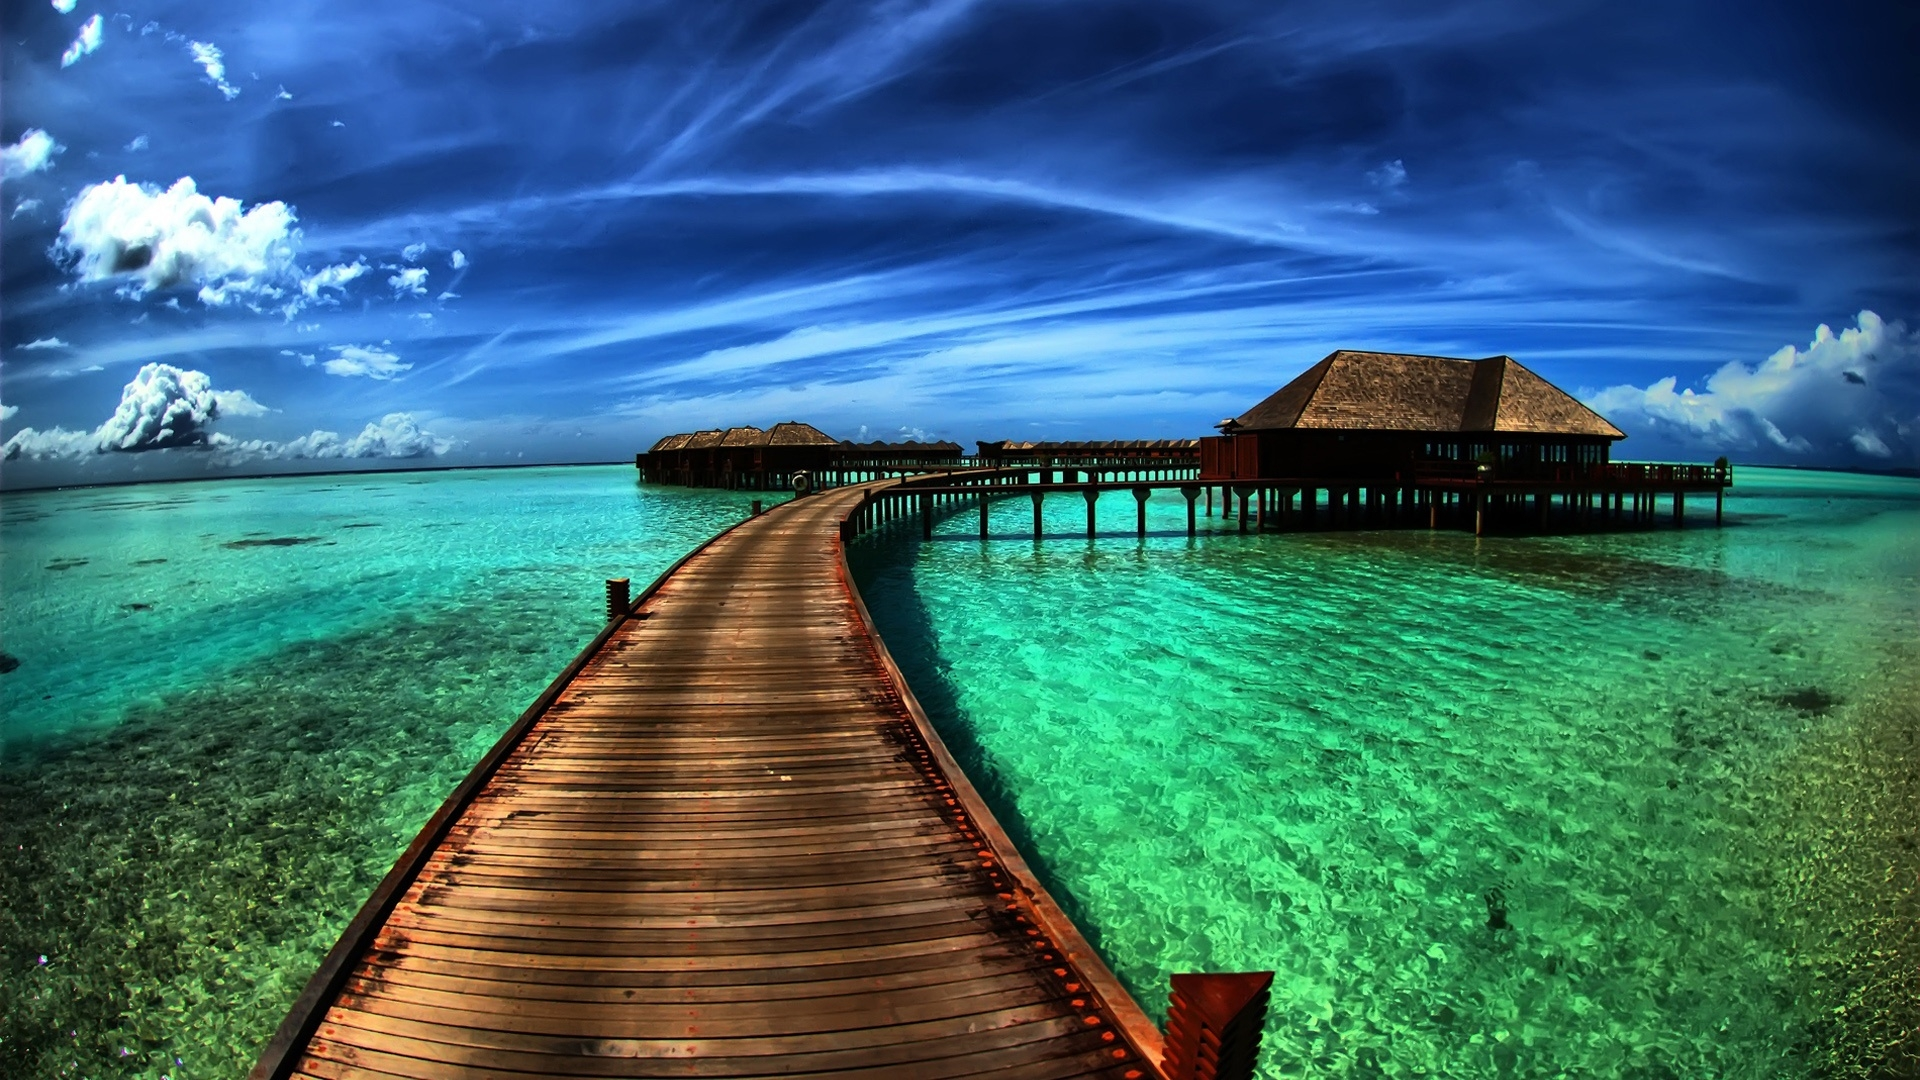 Amazing Sea Resort for 1920 x 1080 HDTV 1080p resolution